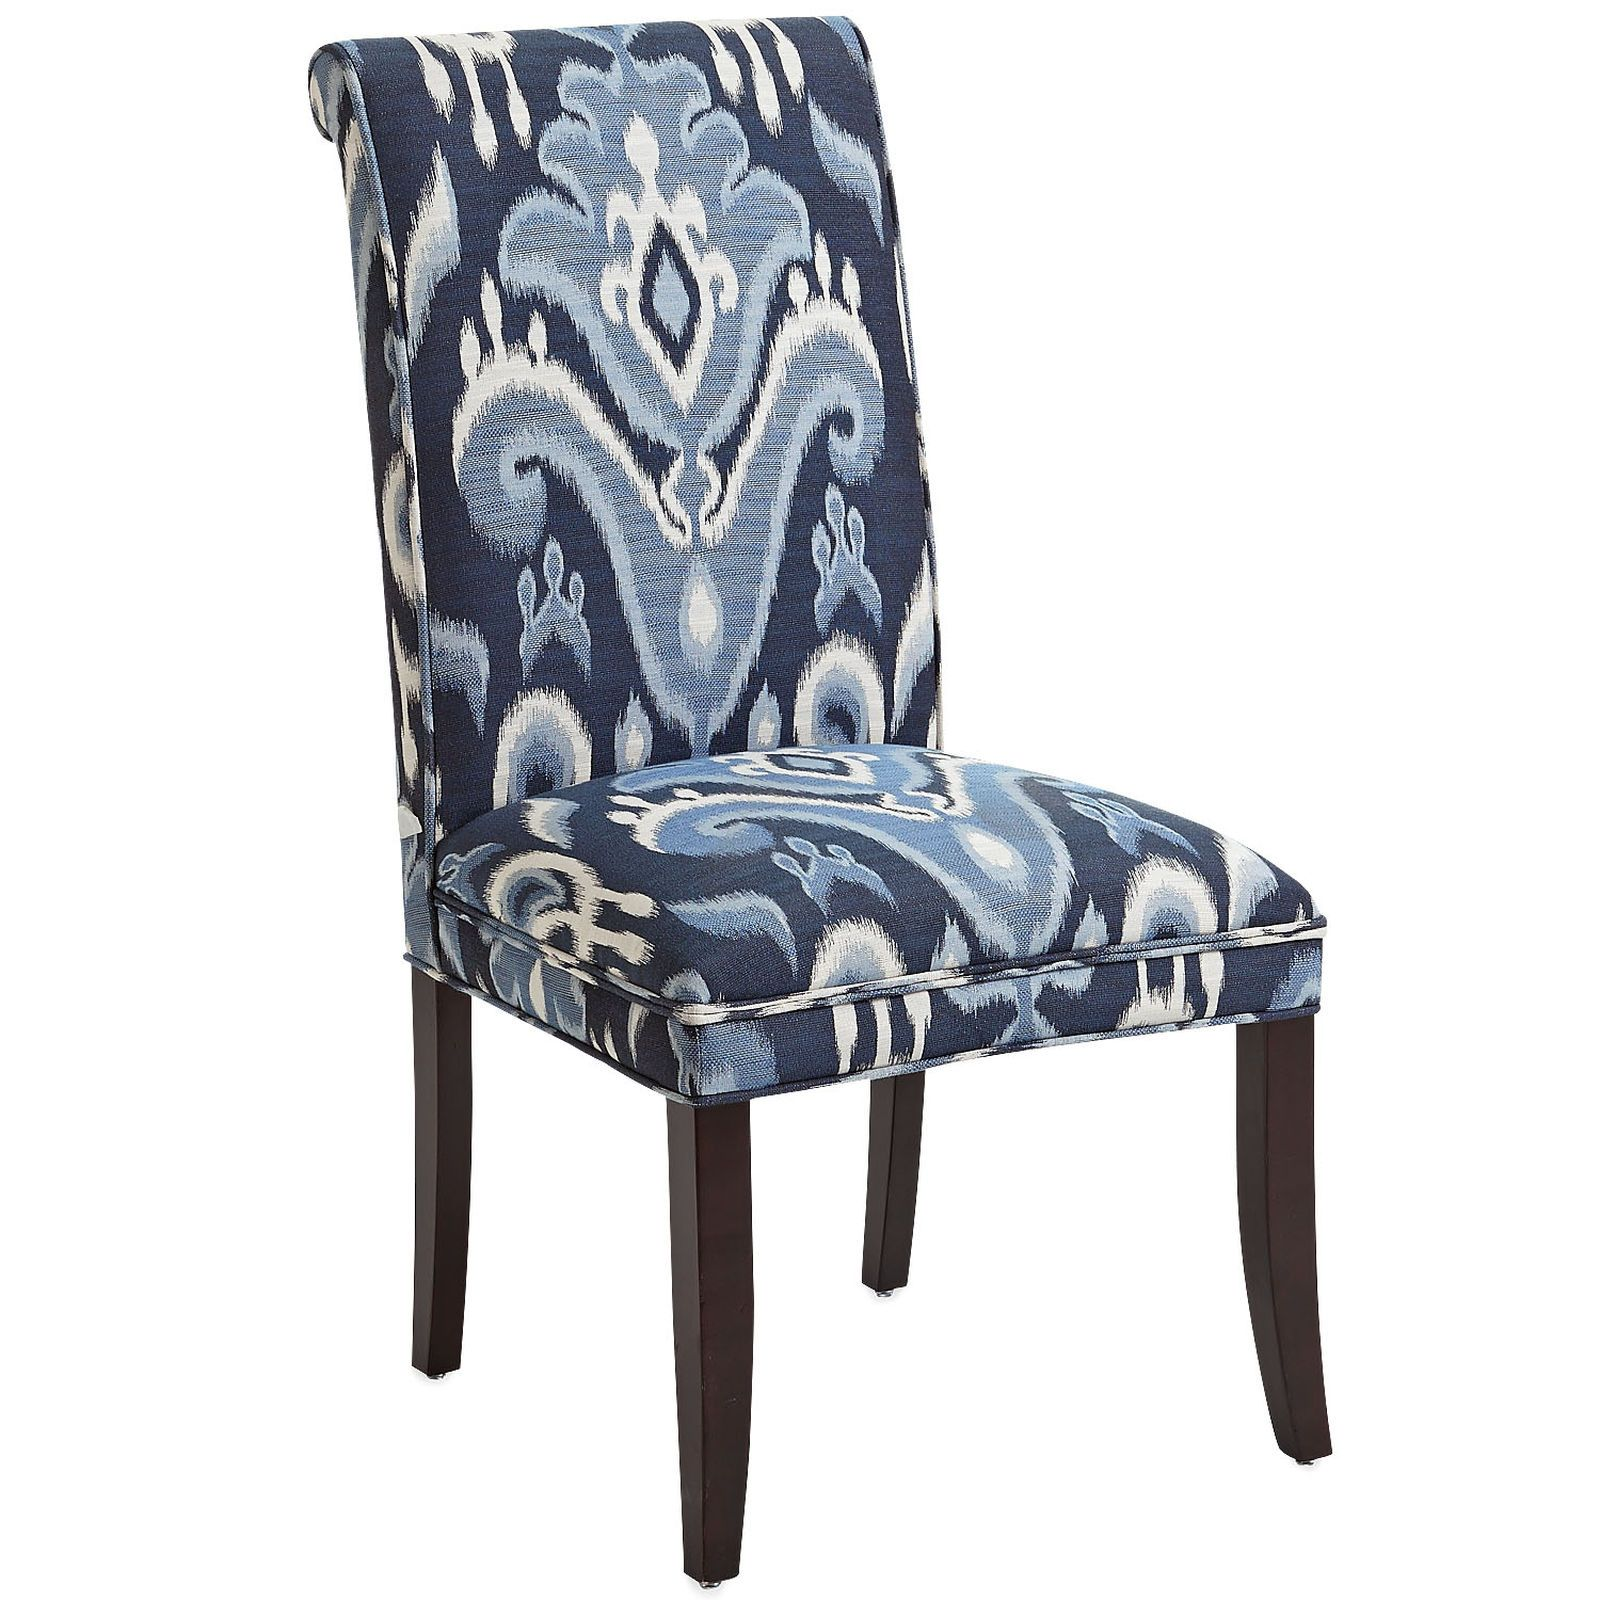 Angela Indigo Ikat Dining Chair With Espresso Wood With Images